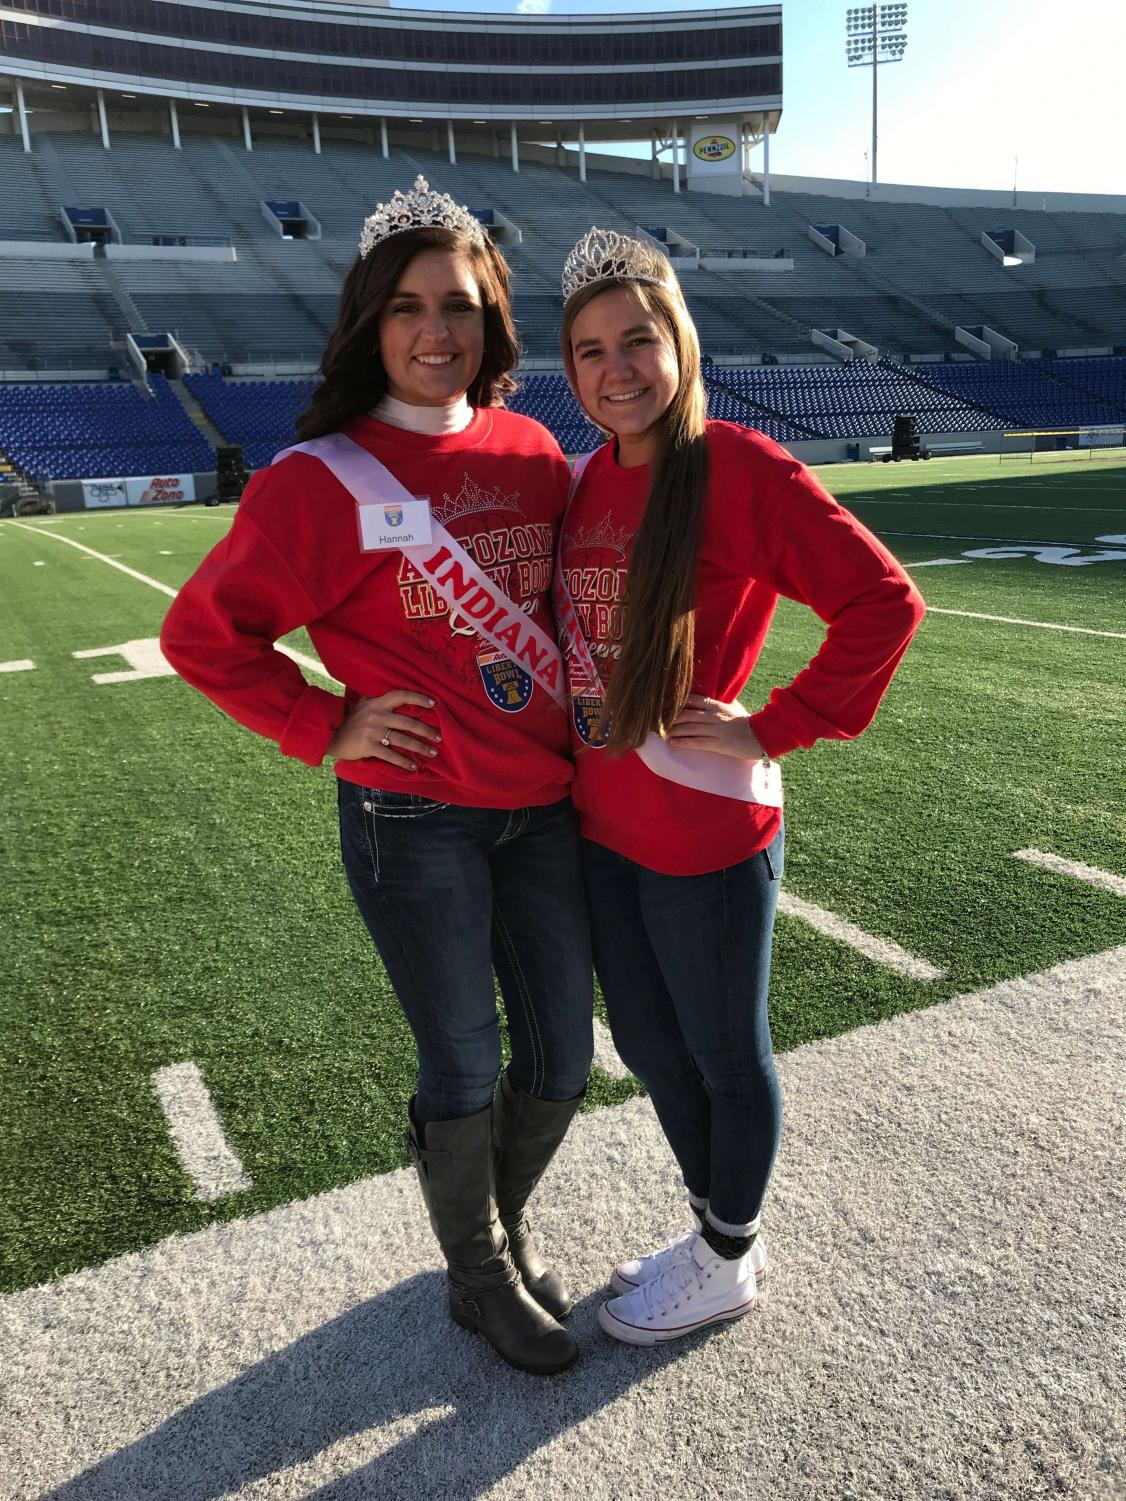 Michigan rep. Maddy Ippel (right) and Indiana rep. Hannah Behm (left) on the field at the 2017 AutoZone Liberty Bowl in Memphis, Tennessee.